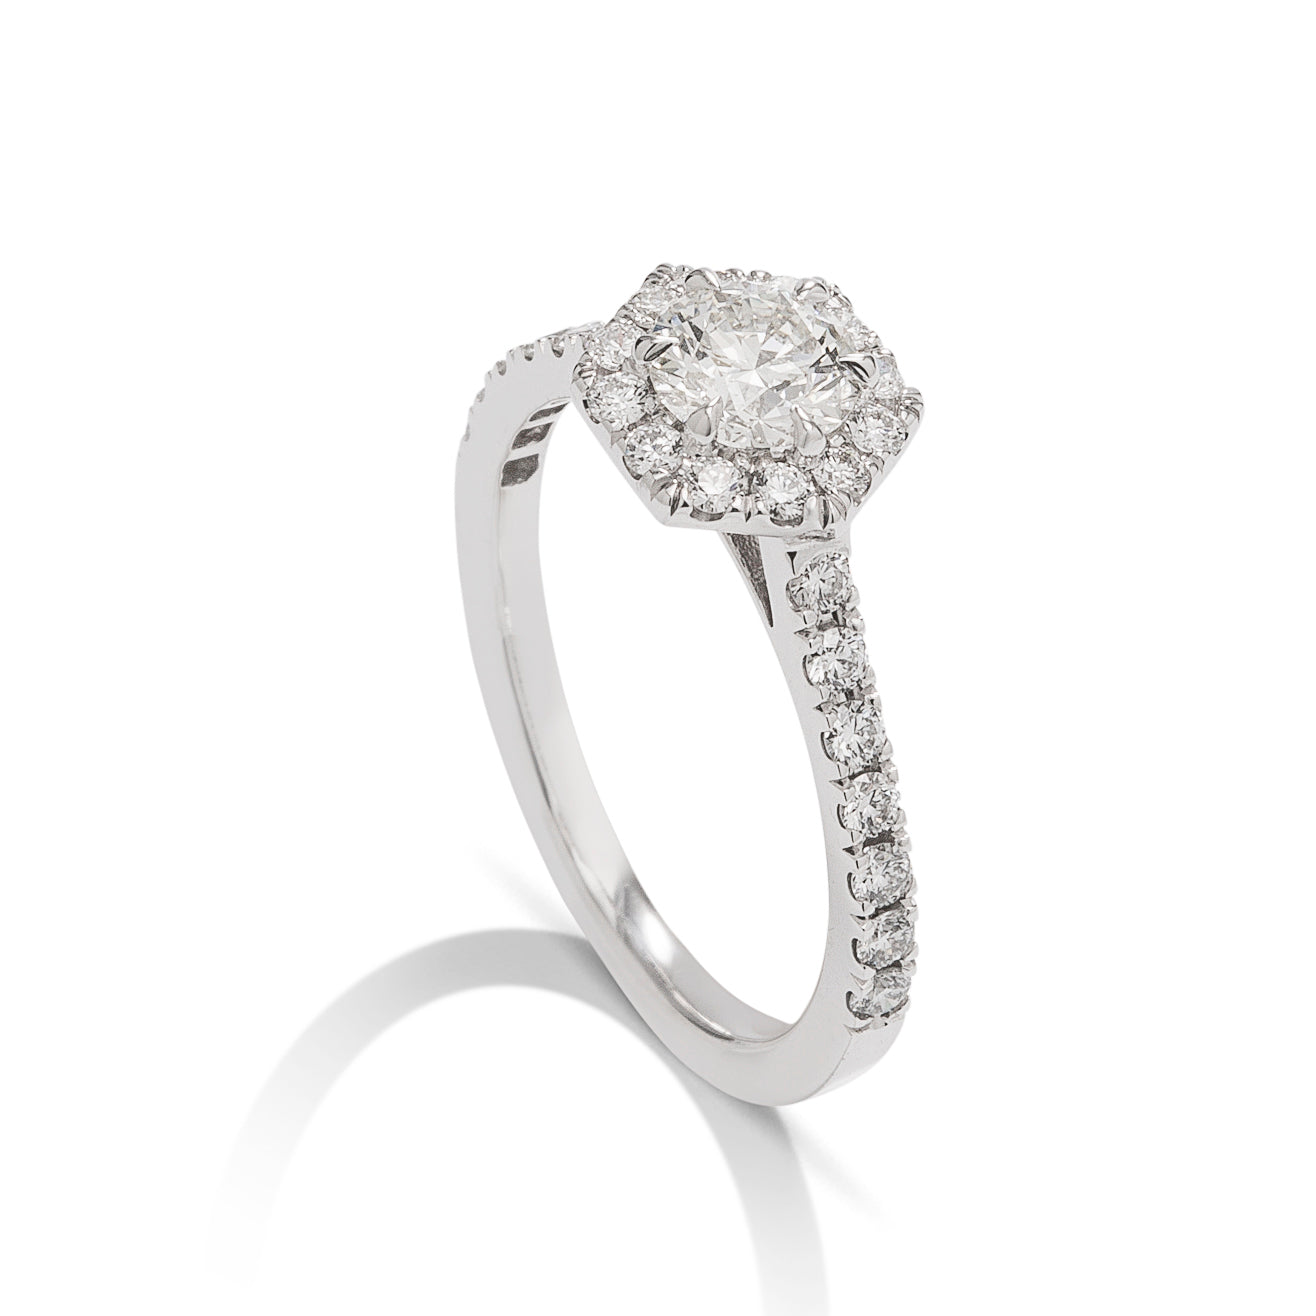 Hearts on Fire 18k White Gold Hexagonal Diamond Ring - Charles Koll Jewellers